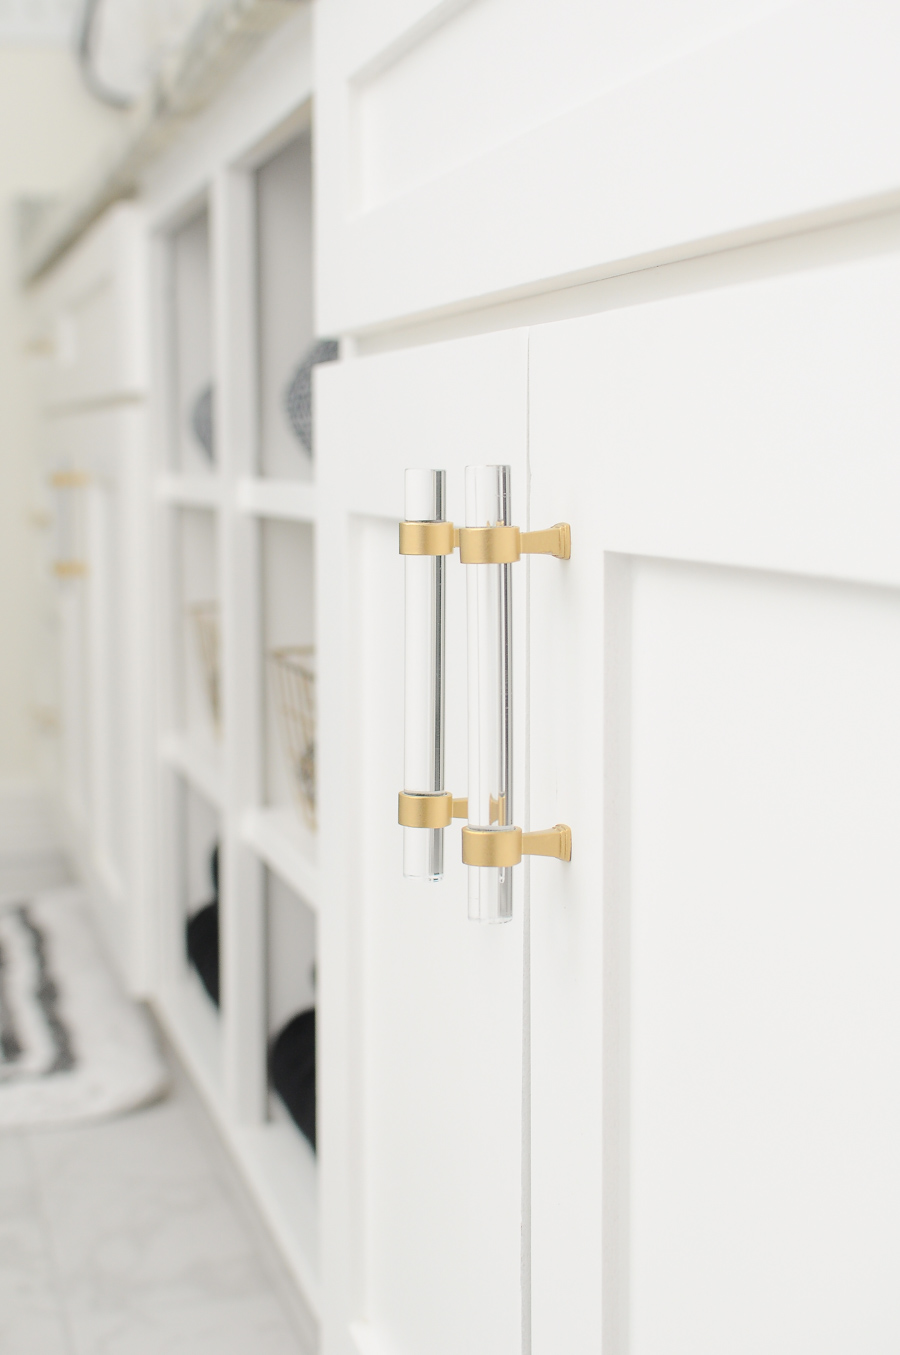 How to change chrome finishes to a gorgeous satin gold finish to update your cabinet pulls and hardware. | #DIY #Decor #tutorial #bathroom #closet #hardware #cabinets #whitecabinets #whitekitchens #whitebathroom #budgetdecor #budgetDIY #makeover #tutorial #gold #brass